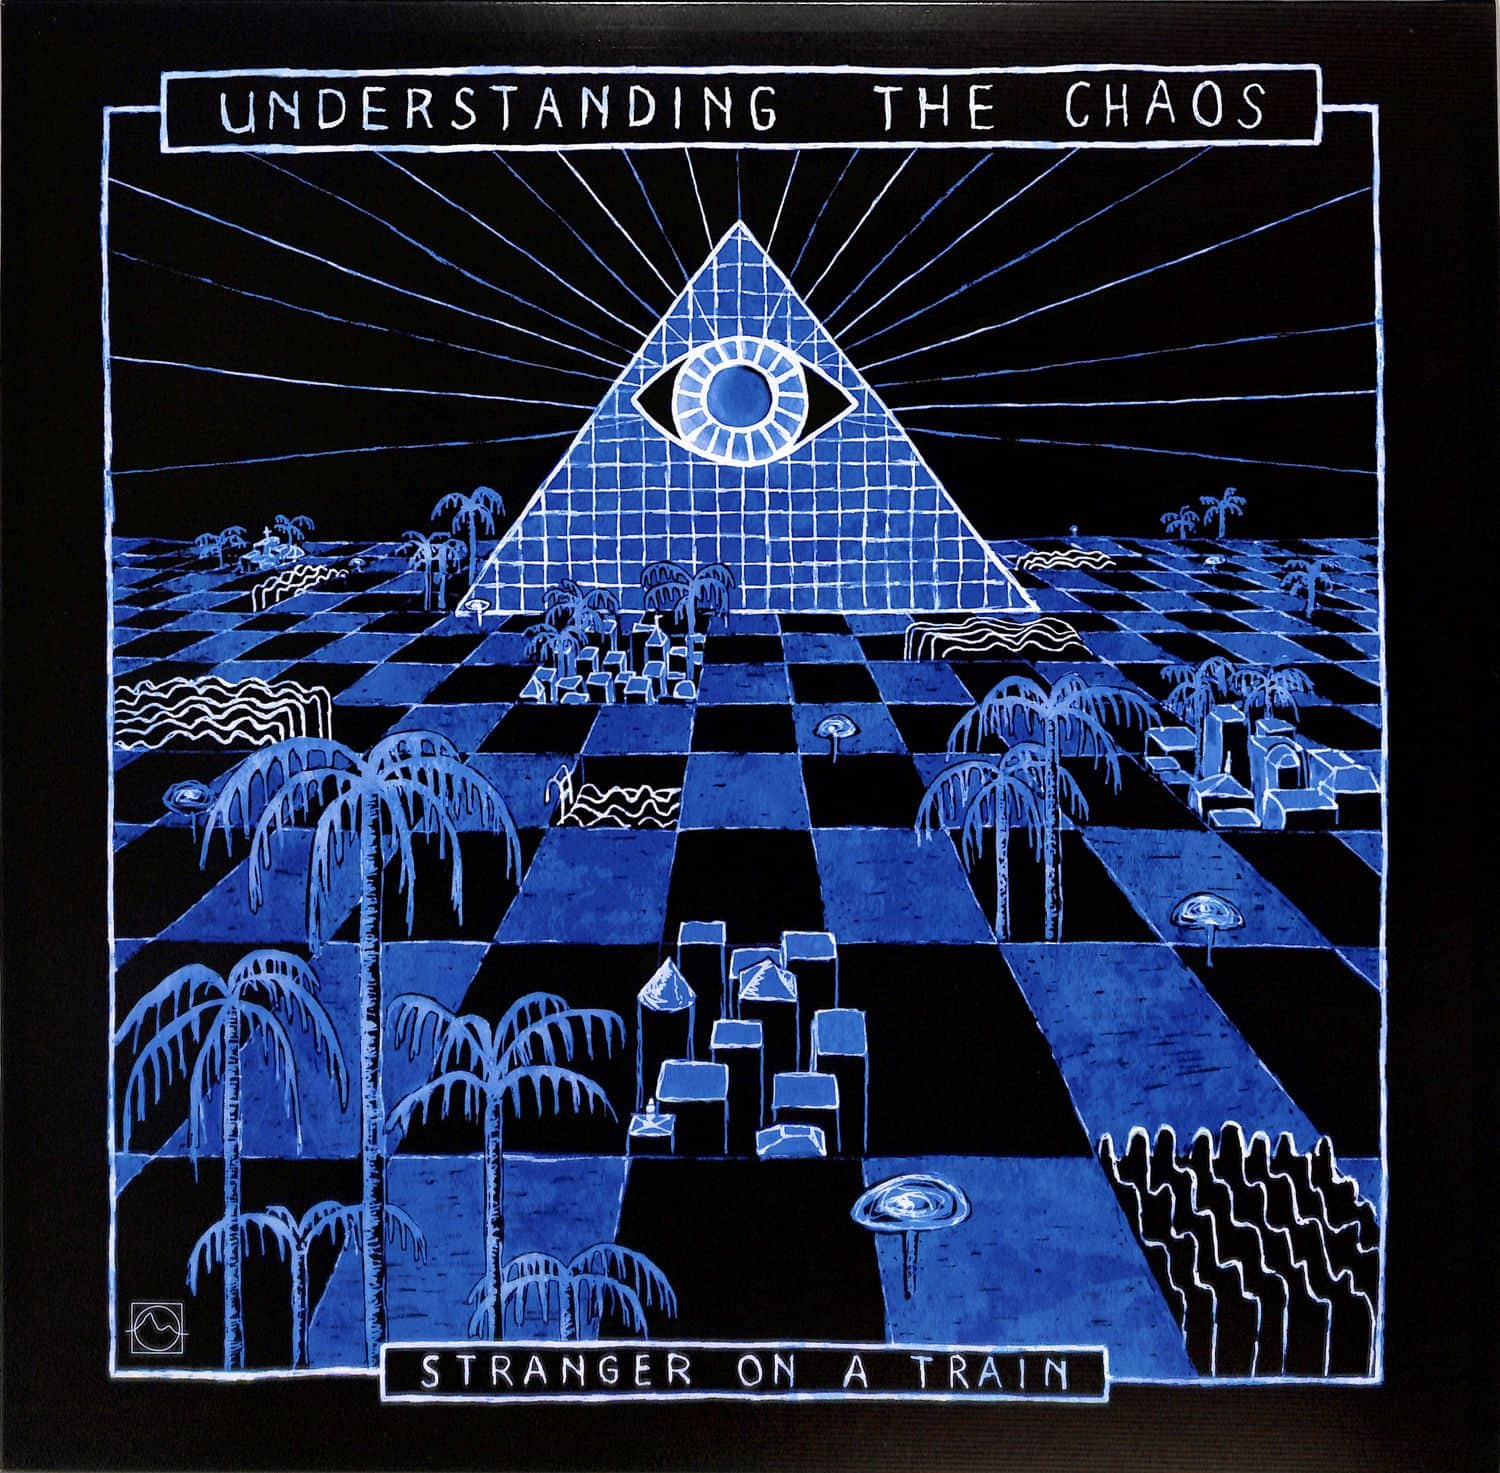 Stranger On A Train - UNDERSTANDING THE CHAOS